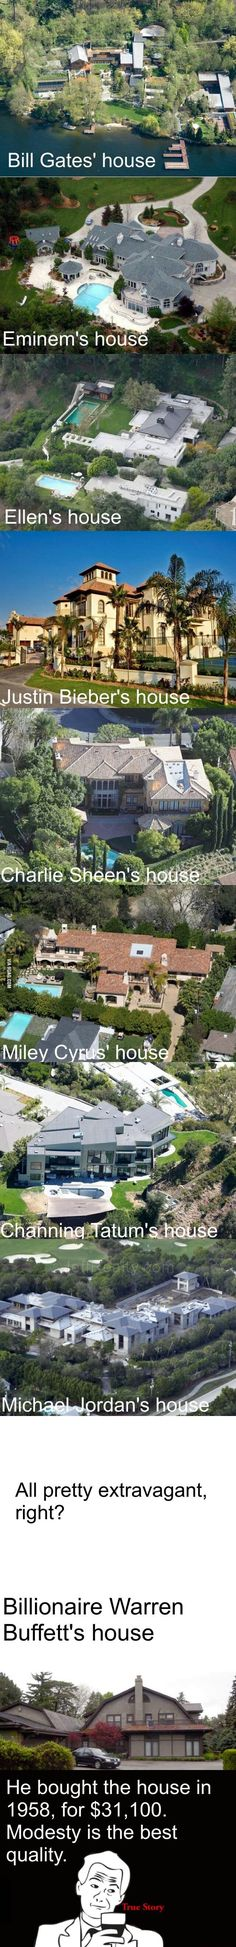 Warren Buffet's House, we can all learn from him.